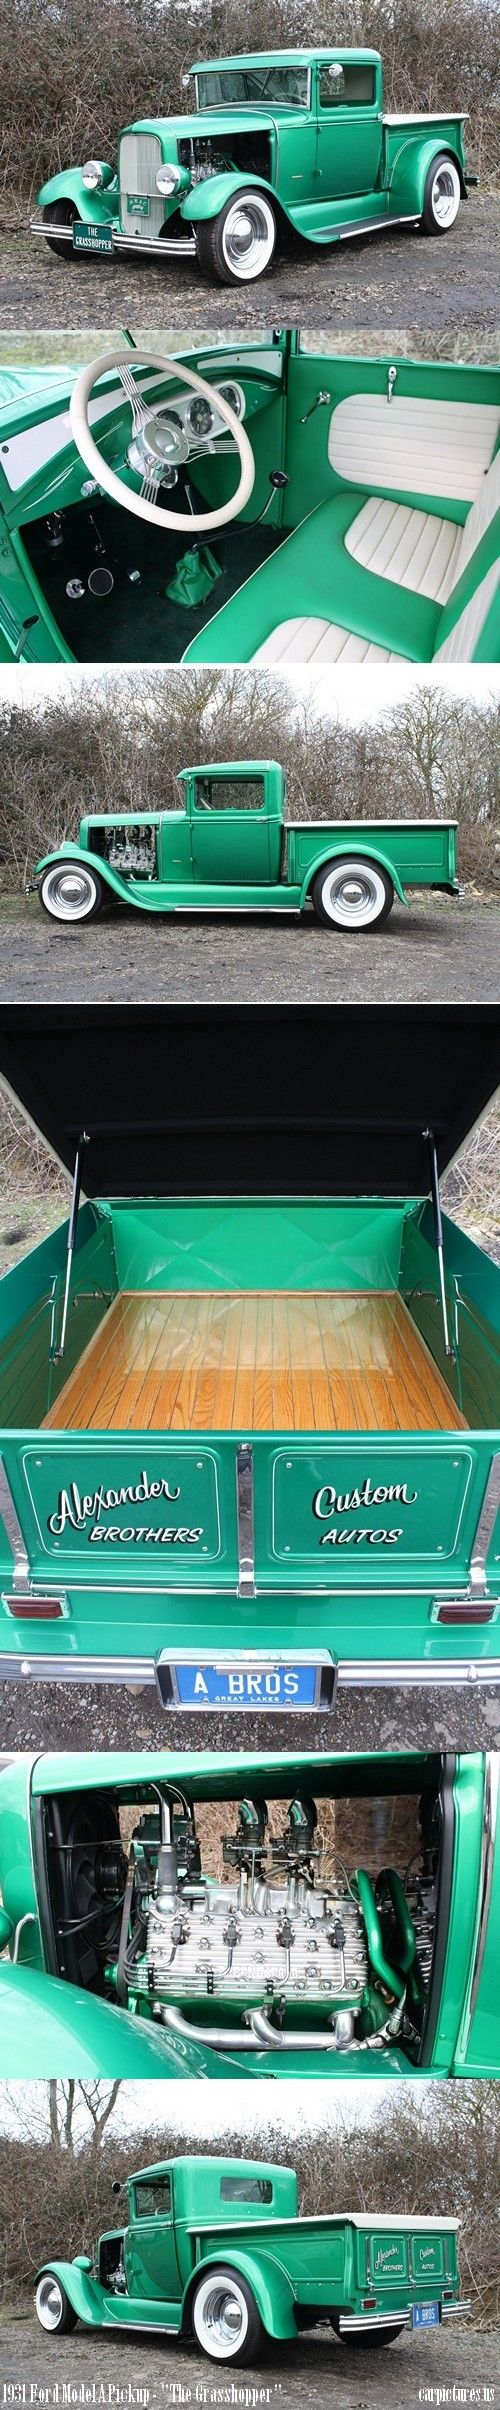 Rsa pulls away from the personal lines broker motor market - 1931 Ford Model A Custom Pickup The Grasshopper Sealingandexpungements Com 888